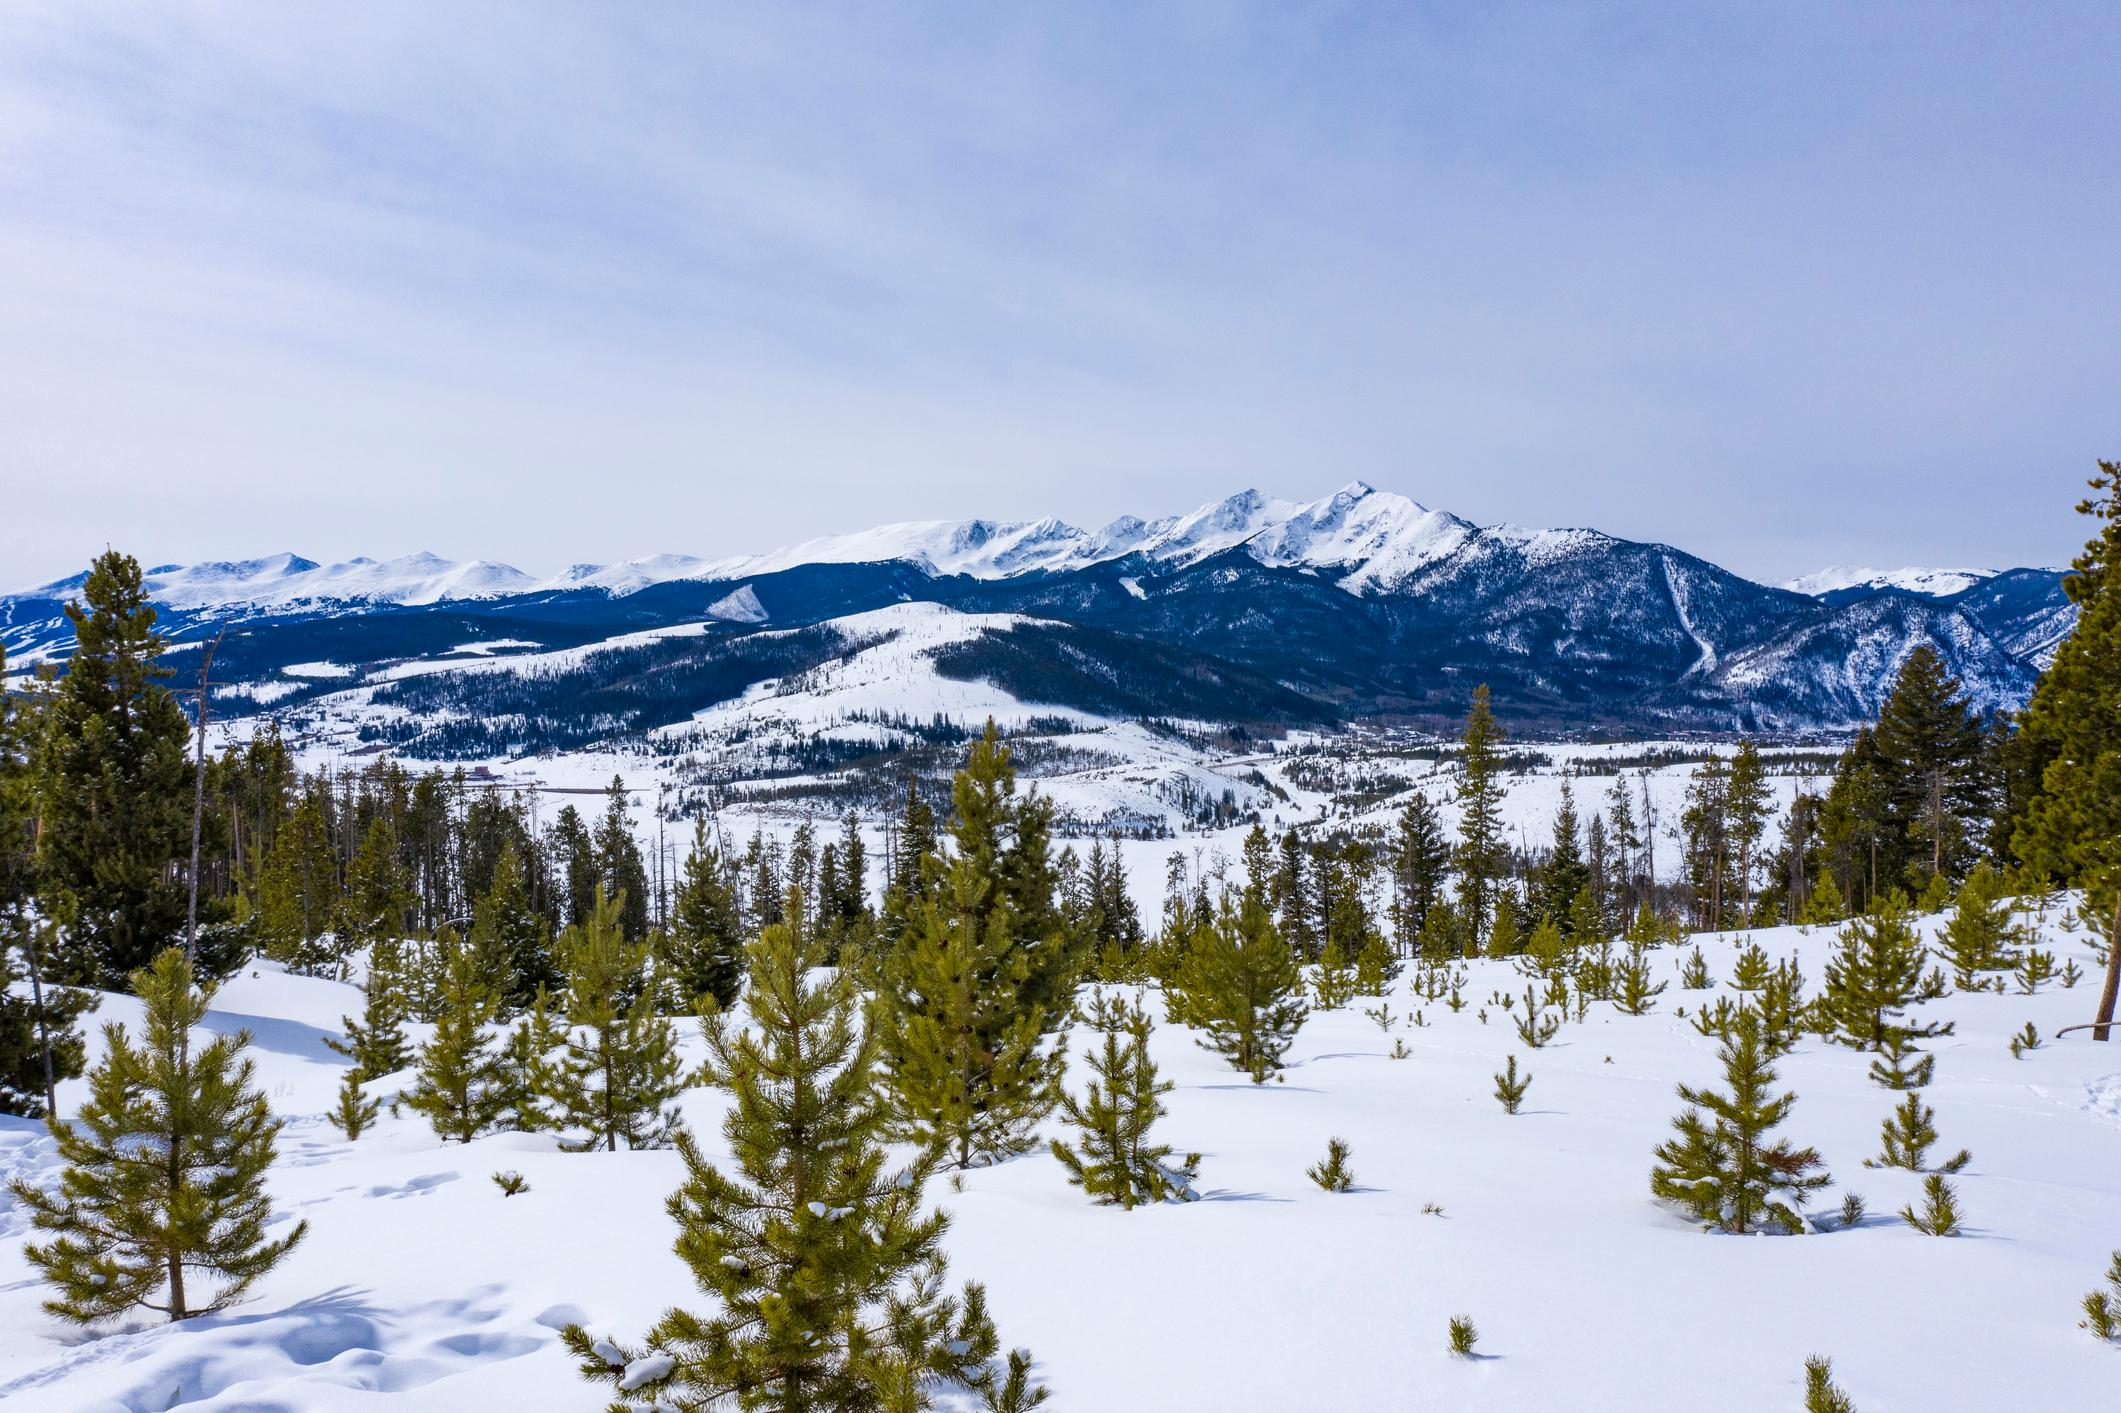 Copper Mountain Resort, Keystone Resort, and Breckenridge Ski Resort are all within 12 miles of your rental.